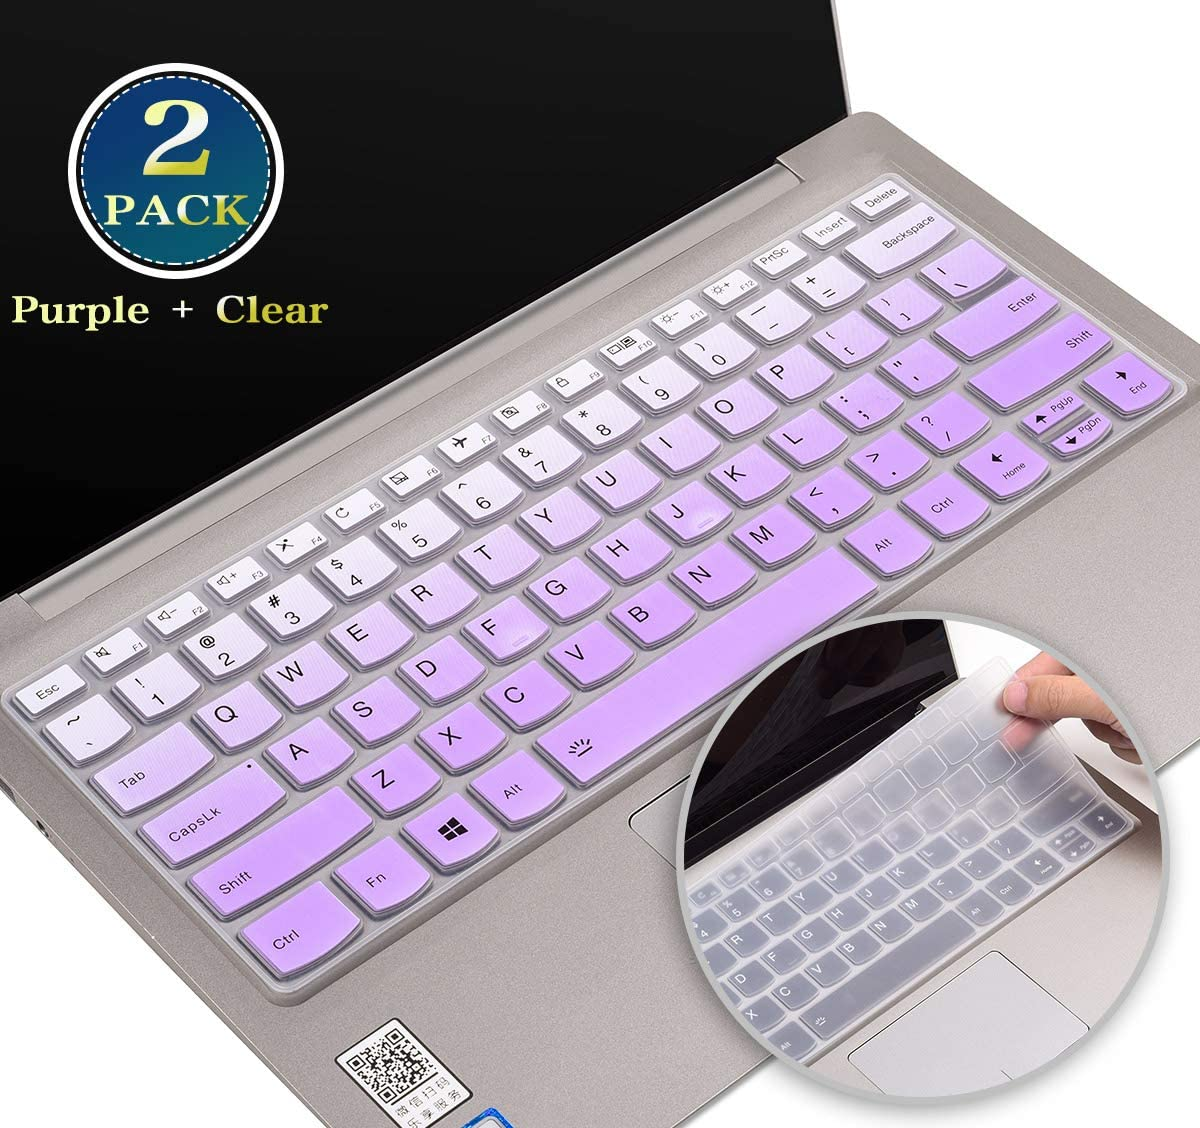 "for Lenovo Yoga 730 Keyboard Cover, Silicone Keyboard Skin for Lenovo Flex 15/Flex 14, Lenovo Yoga C740 C940 C930 13.9 Inch,Lenovo Yoga 720 13.3"" 12.5"" Protector(Purple+Clear)"